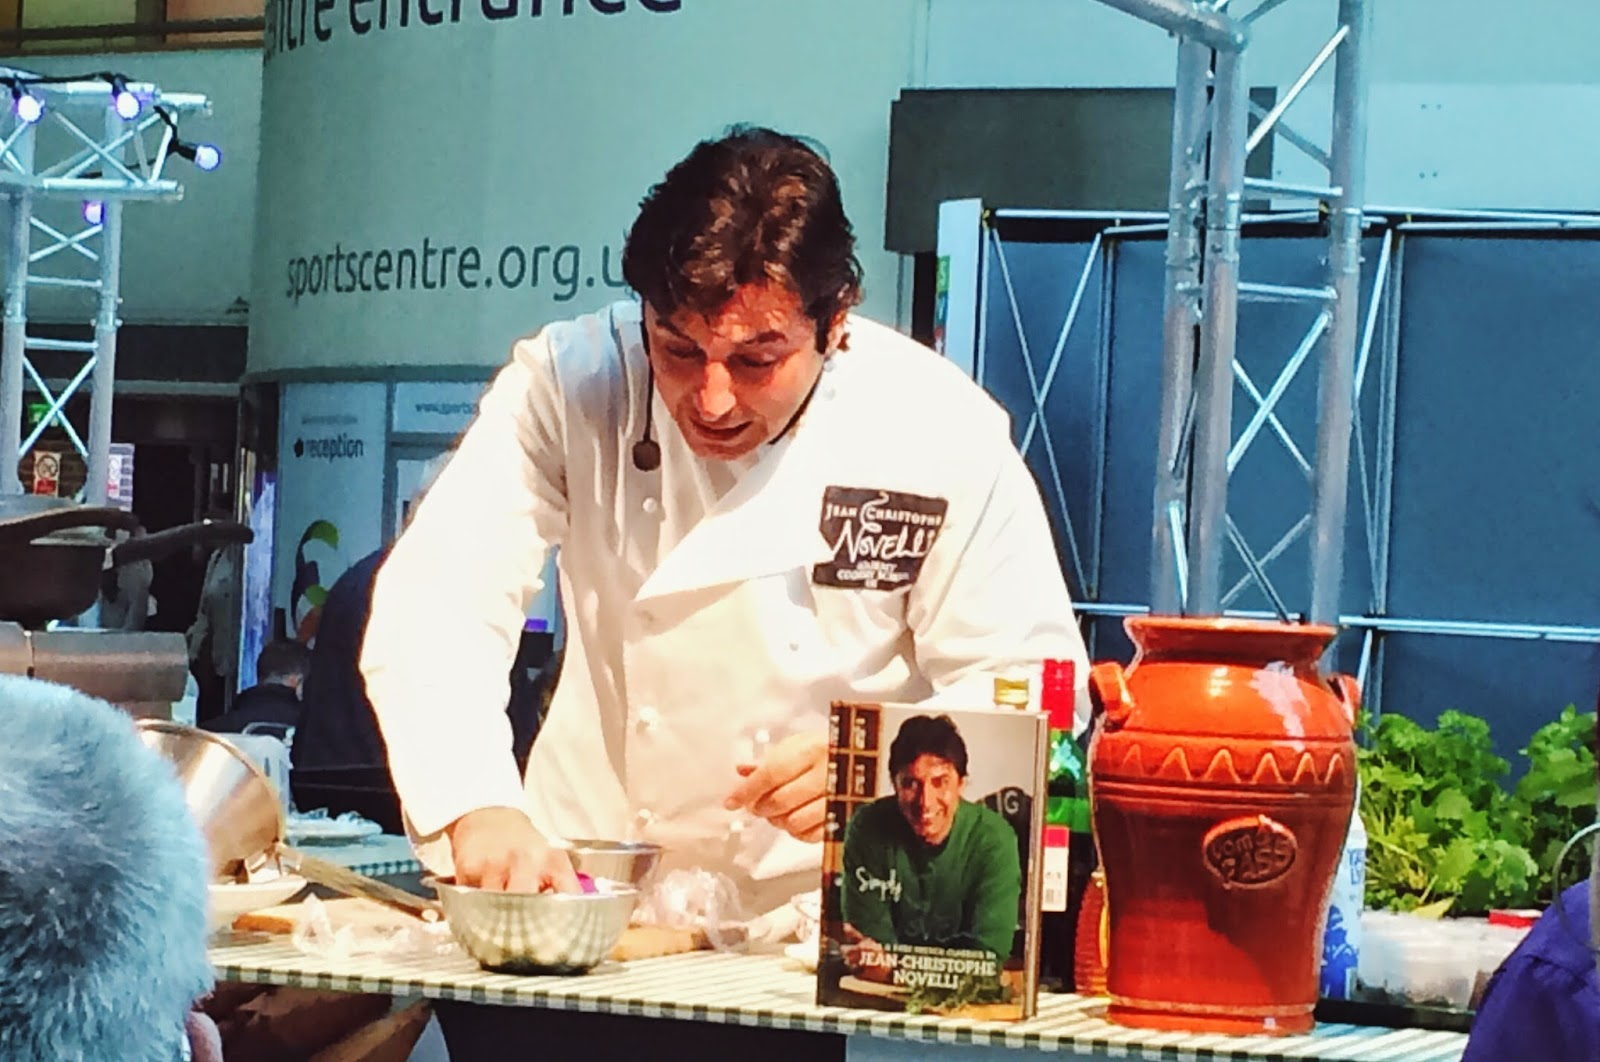 FashionFake, a UK fashion and lifestyle blog. Read my review of Eat Street, an event which celebrates the best of Basingstoke Festival Places' restaurants and eateries, with celebrity chef appearance by Jean-Christophe Novelli.